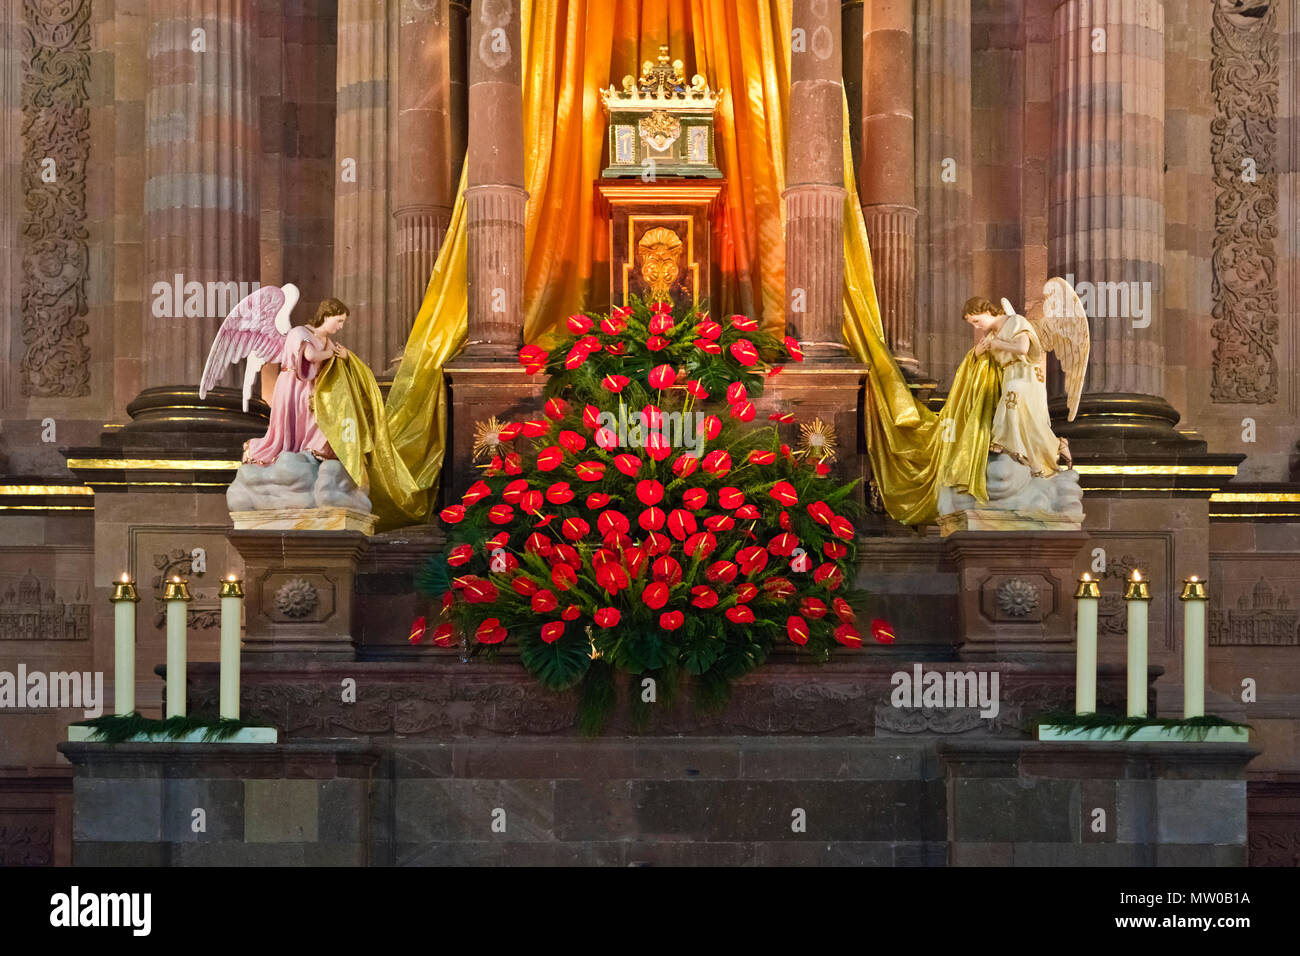 A EASTER ALTAR is set up for Good Friday at the ORATORIO CHURCH  - SAN MIGUEL DE ALLENDE, MEXICO - Stock Image